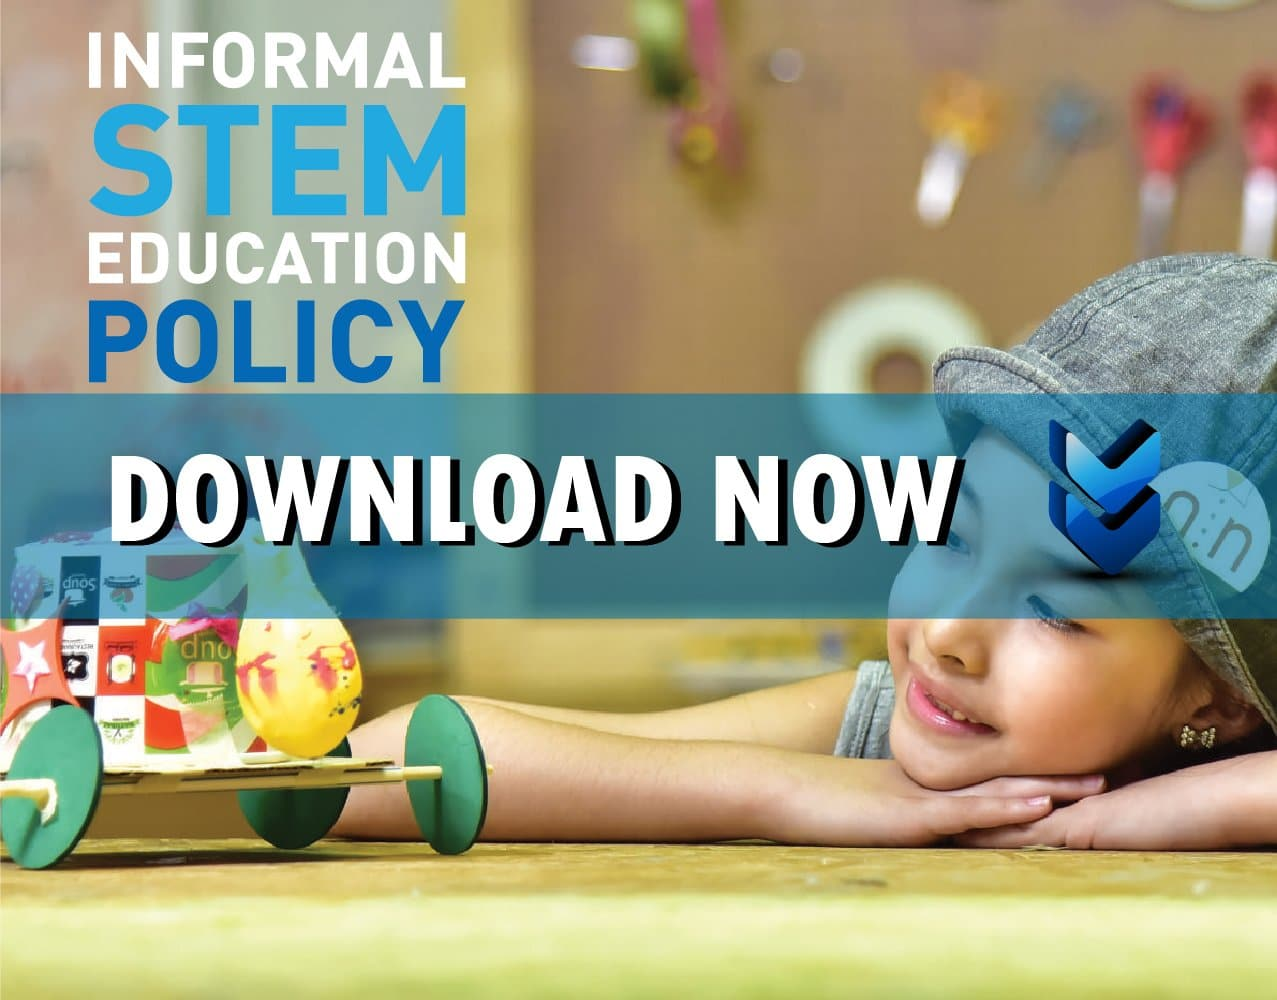 STEM education policy